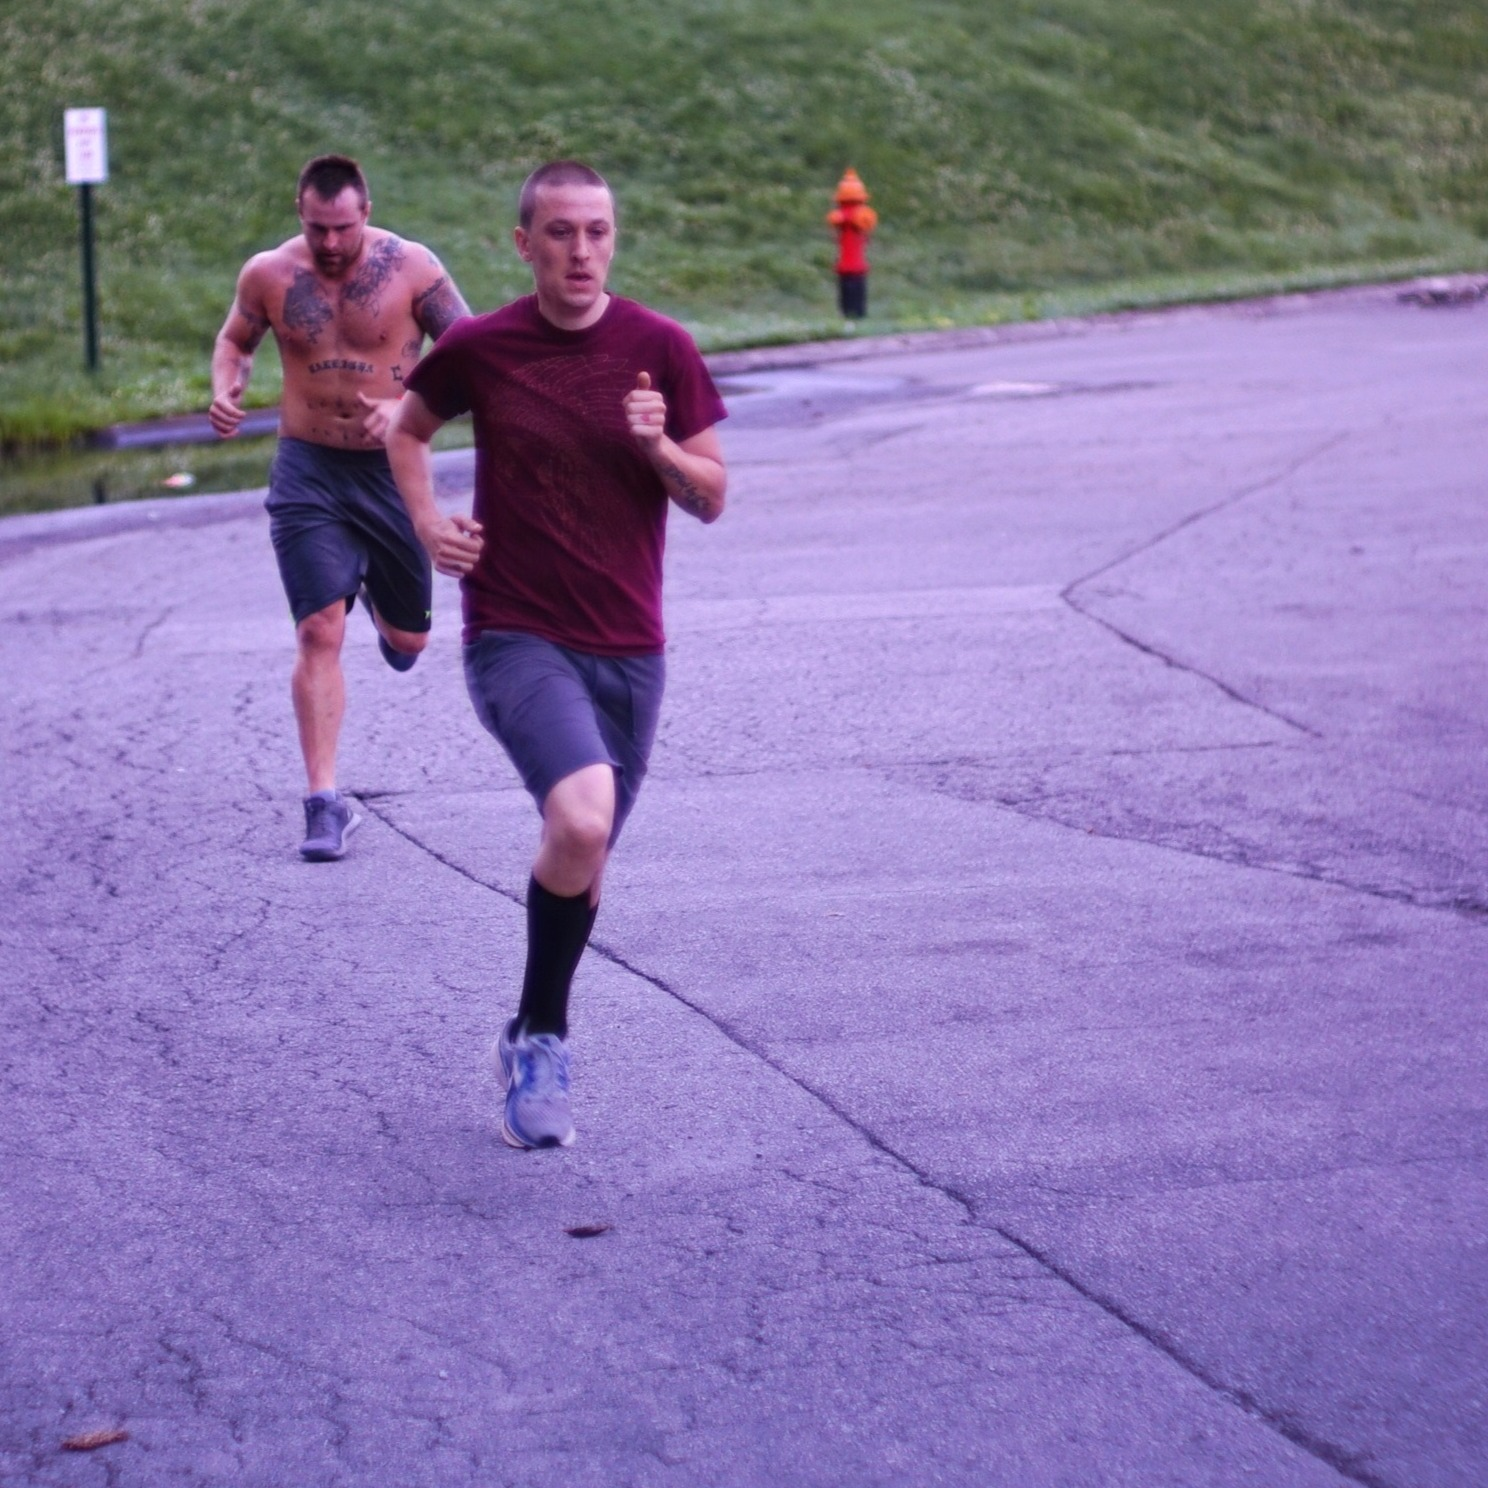 find group training near me belle meade - Athlete of the Month: Chris George